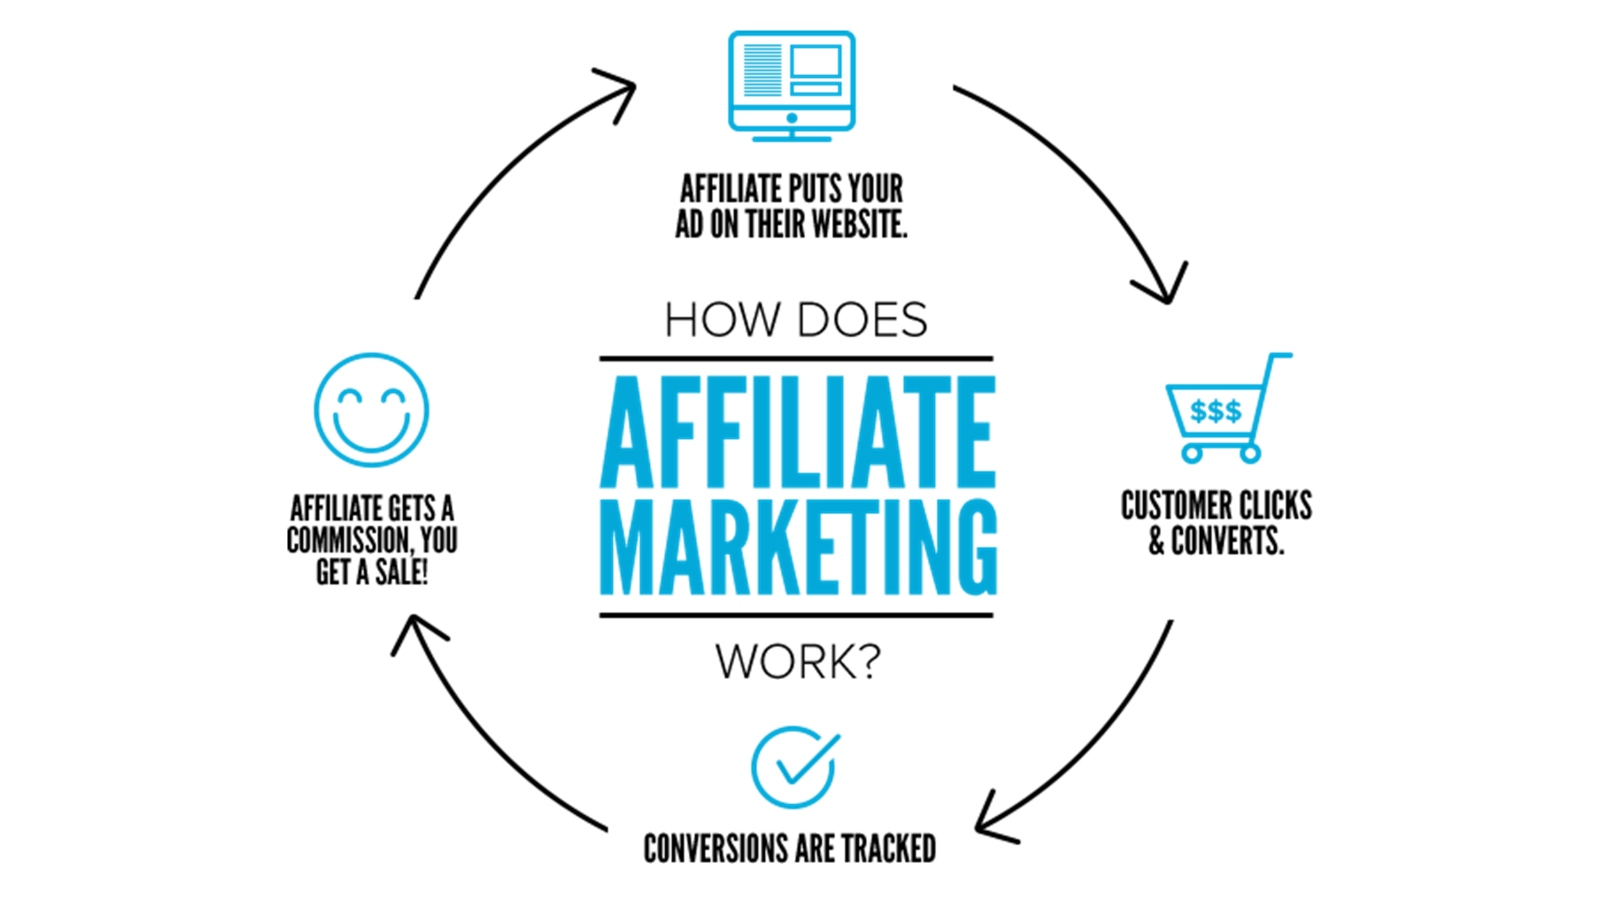 Everything_You_Need_to_Know_About_Affiliate_Marketing.jpg